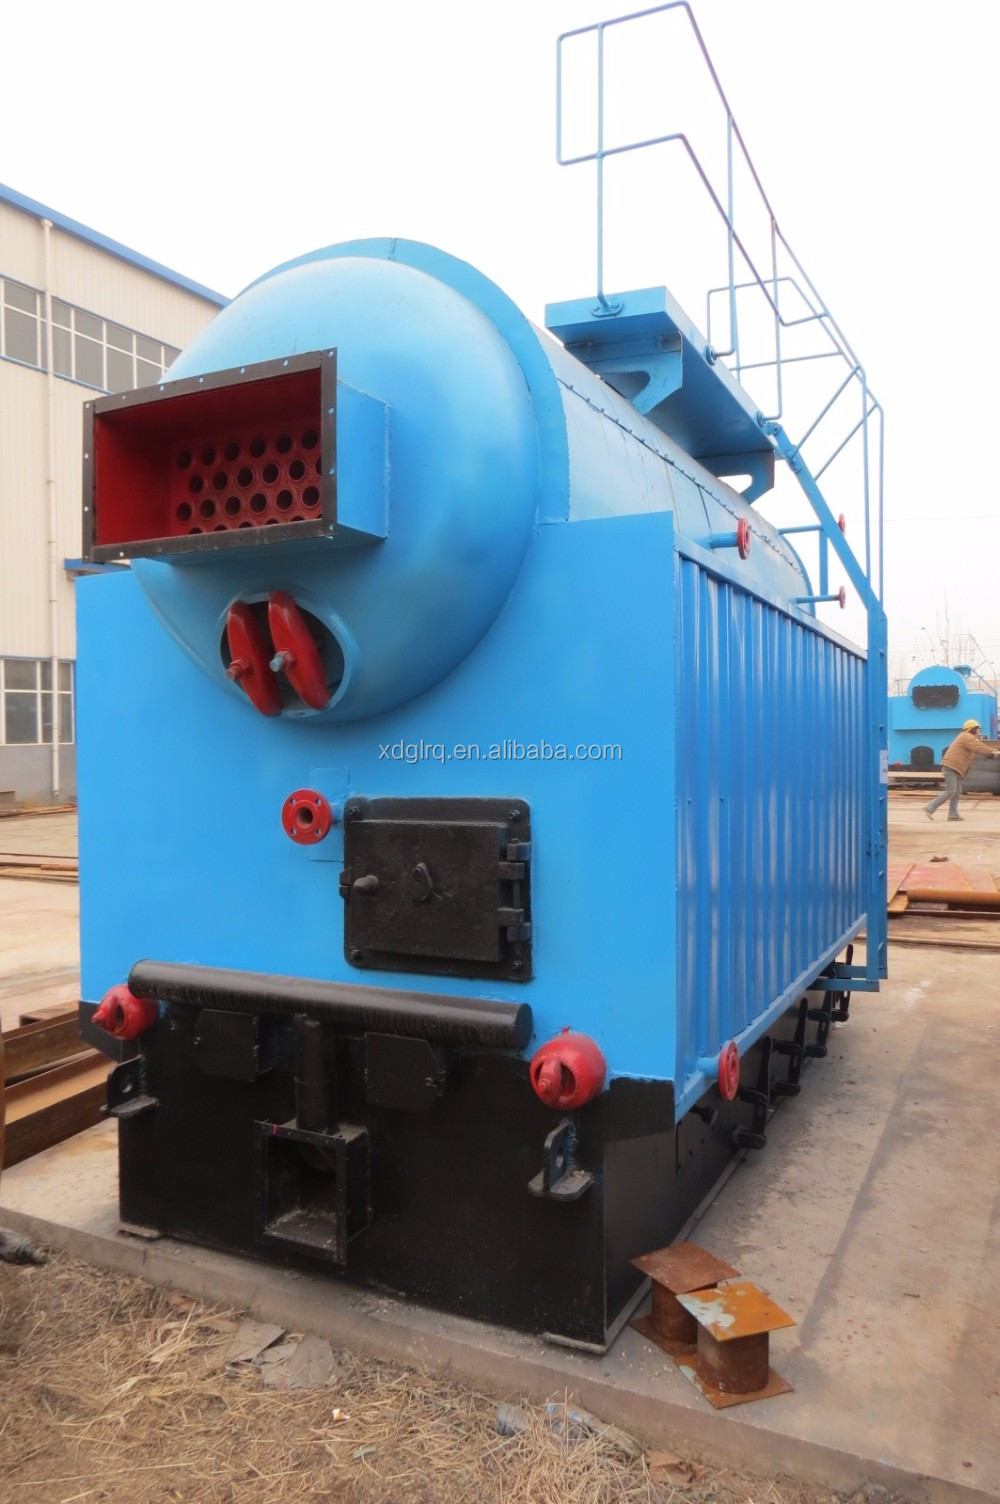 Industry Dzh Biomass Fuel Fire Water Stove,Single Drum Steam Boiler ...